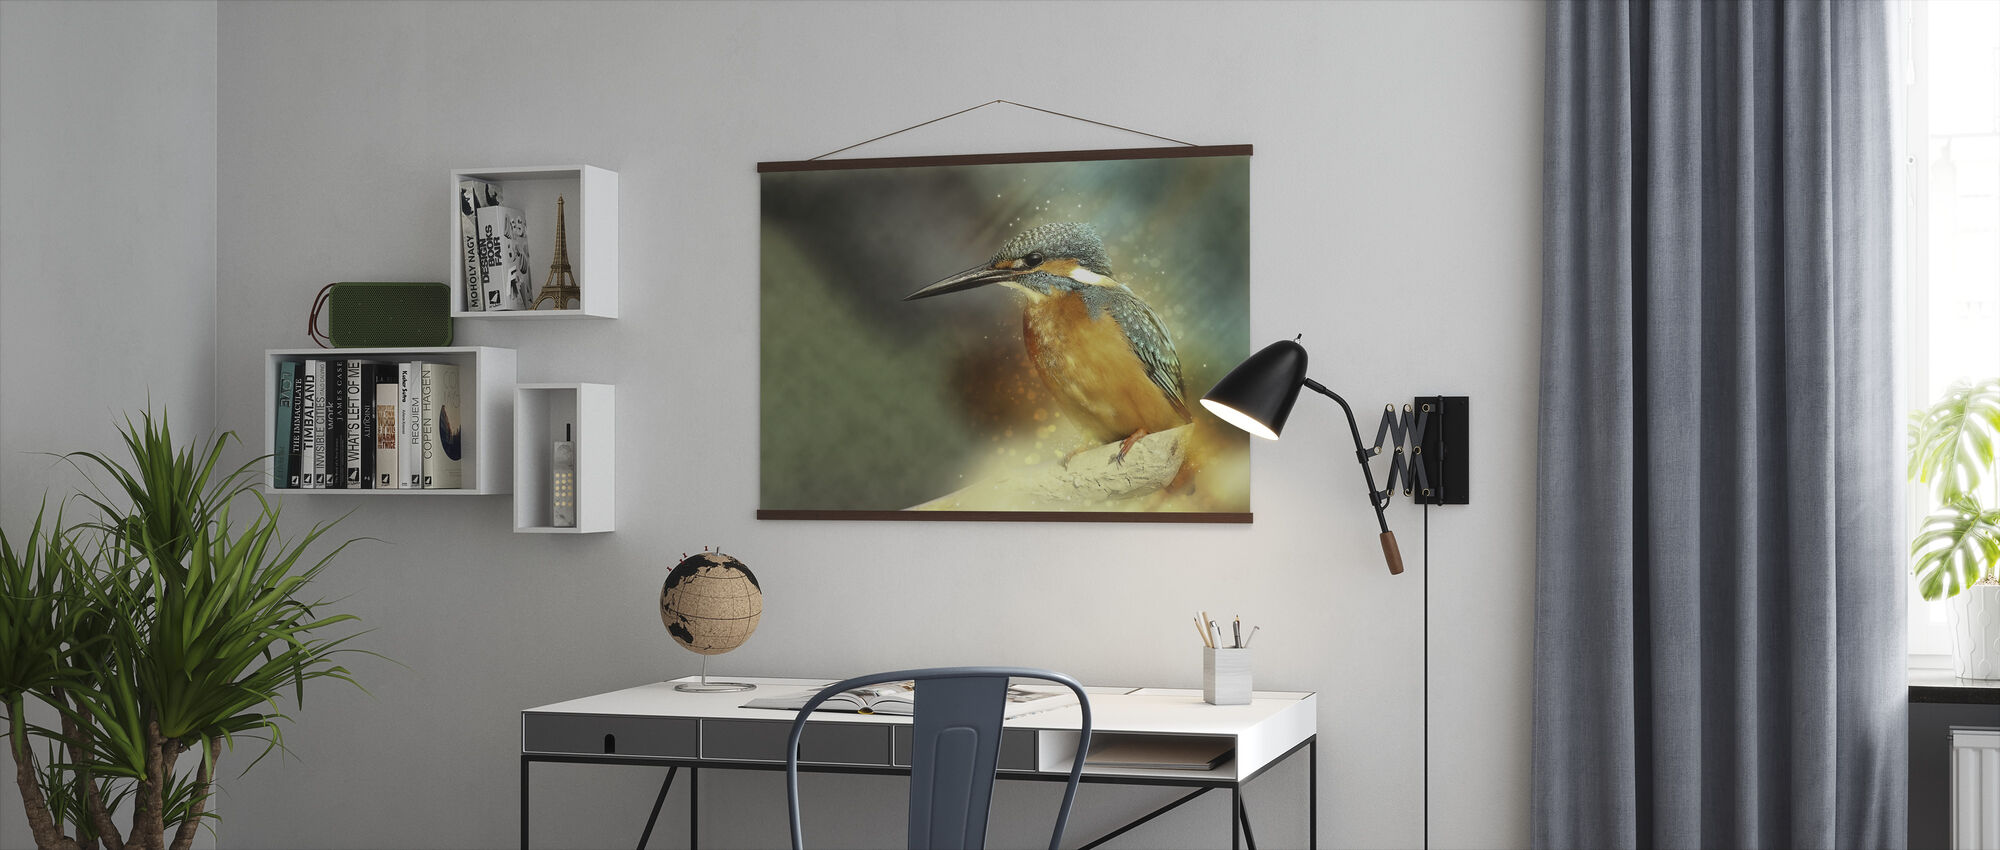 Perched Kingfisher - Poster - Office